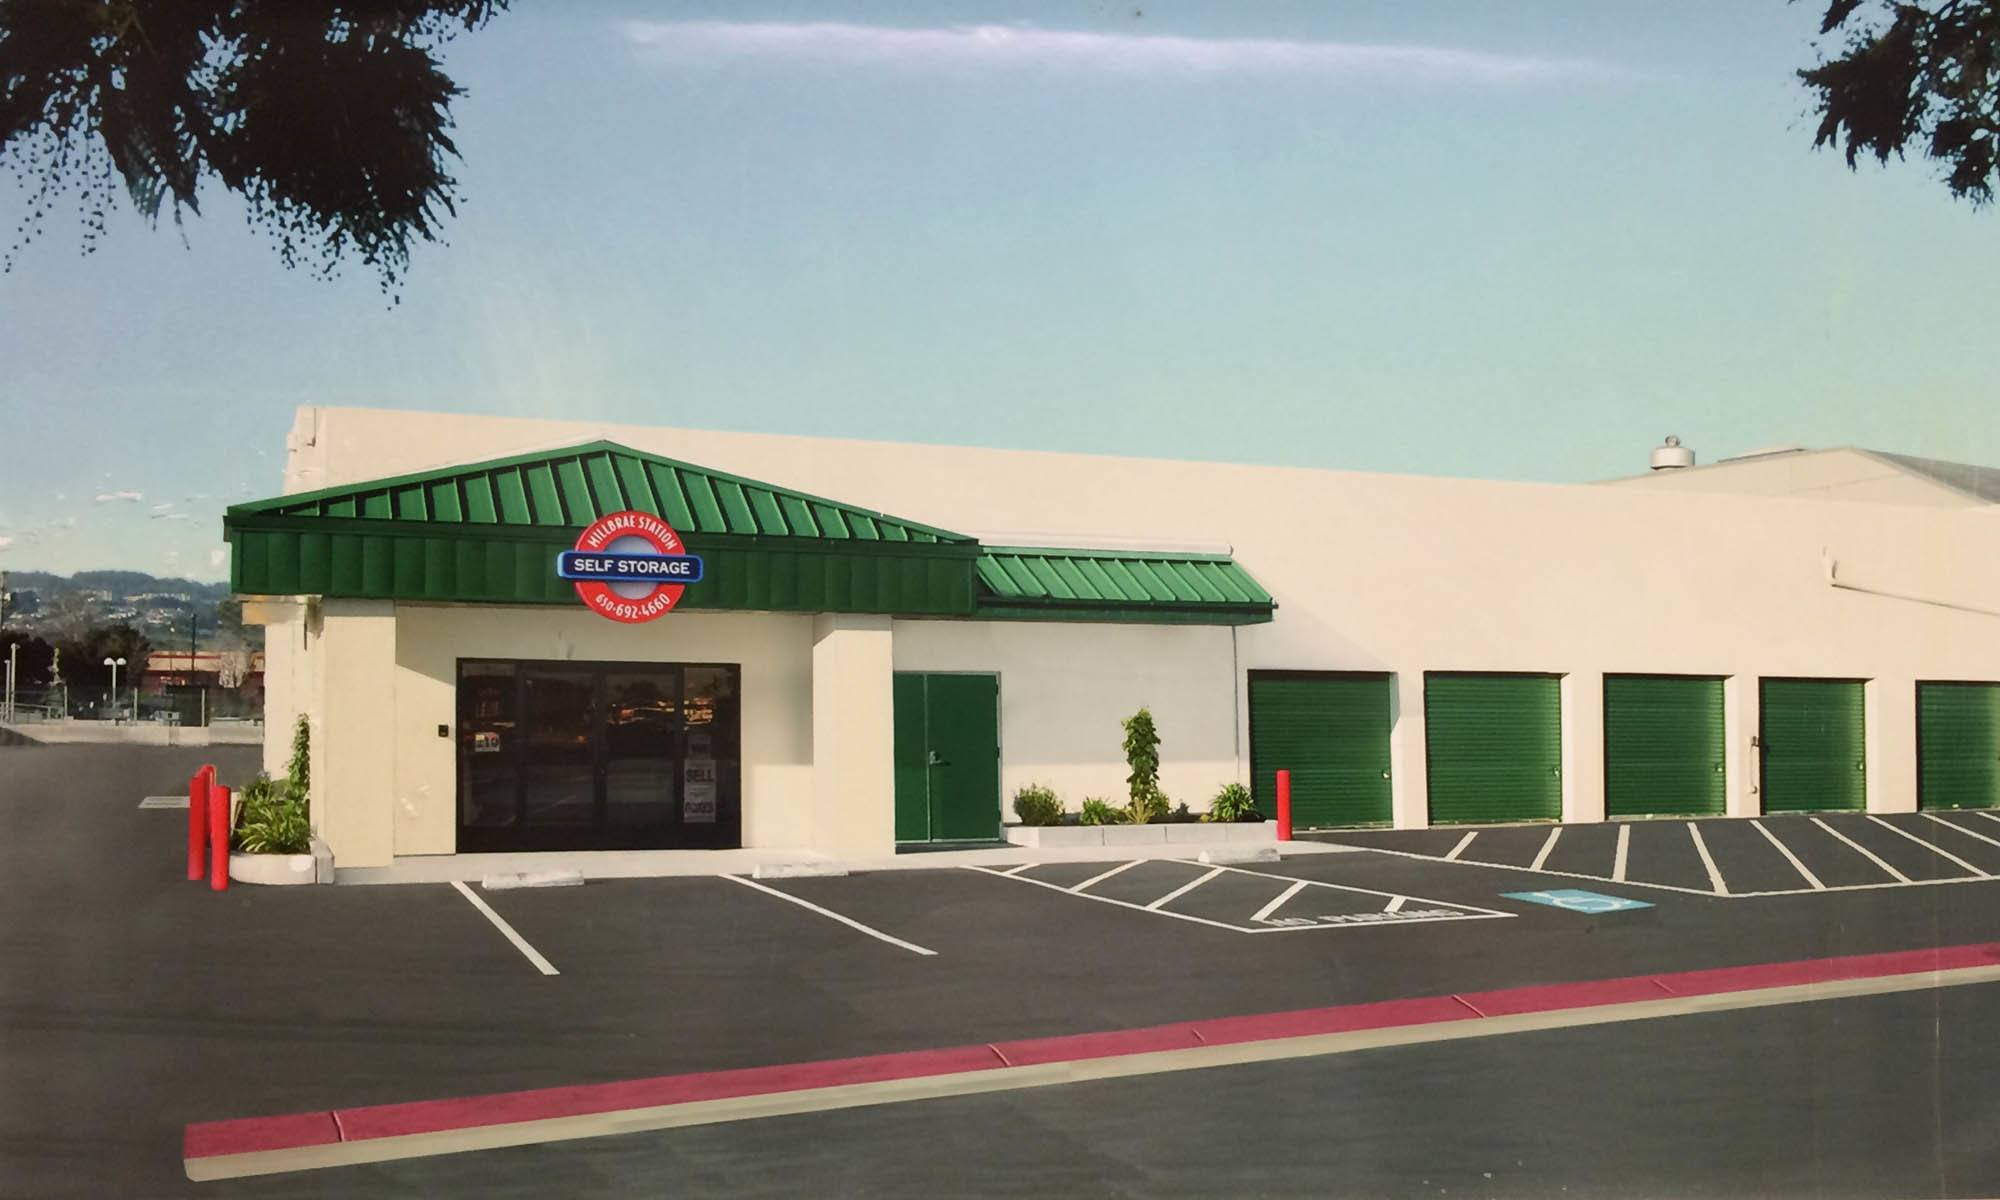 Self storage in Millbrae